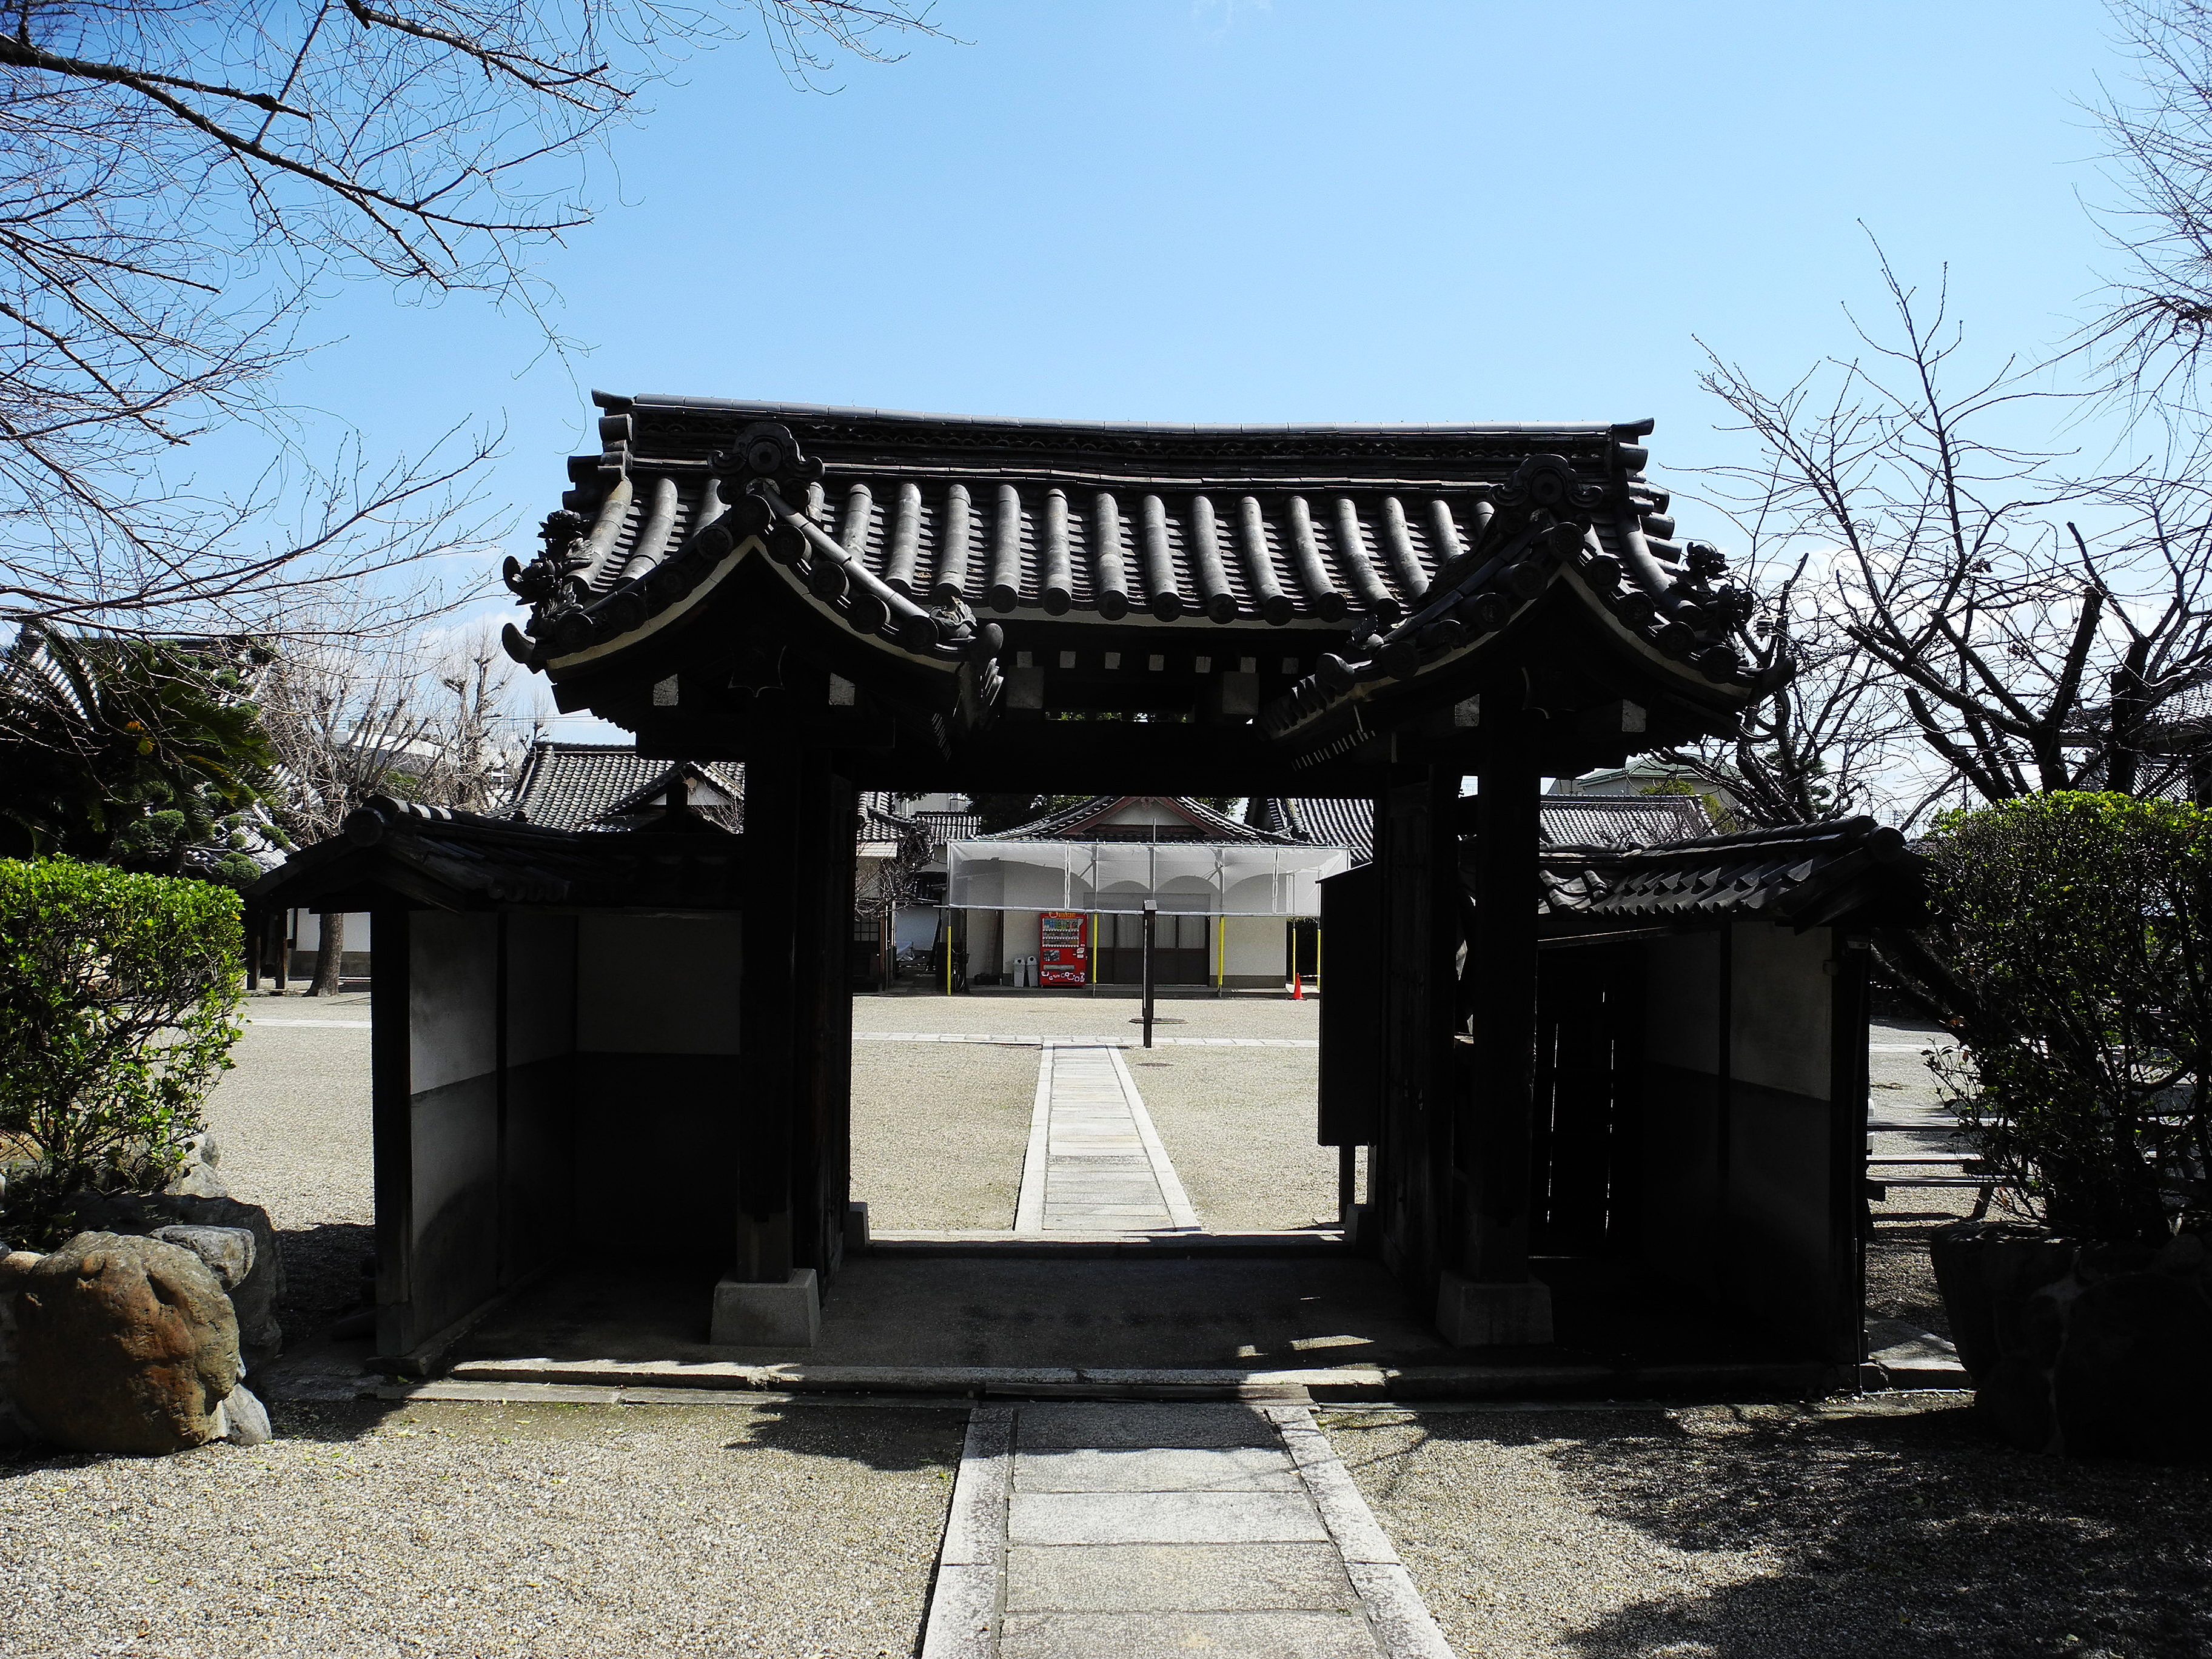 Old Myouan-ji gate at Dainenbutsu-ji in Osaka